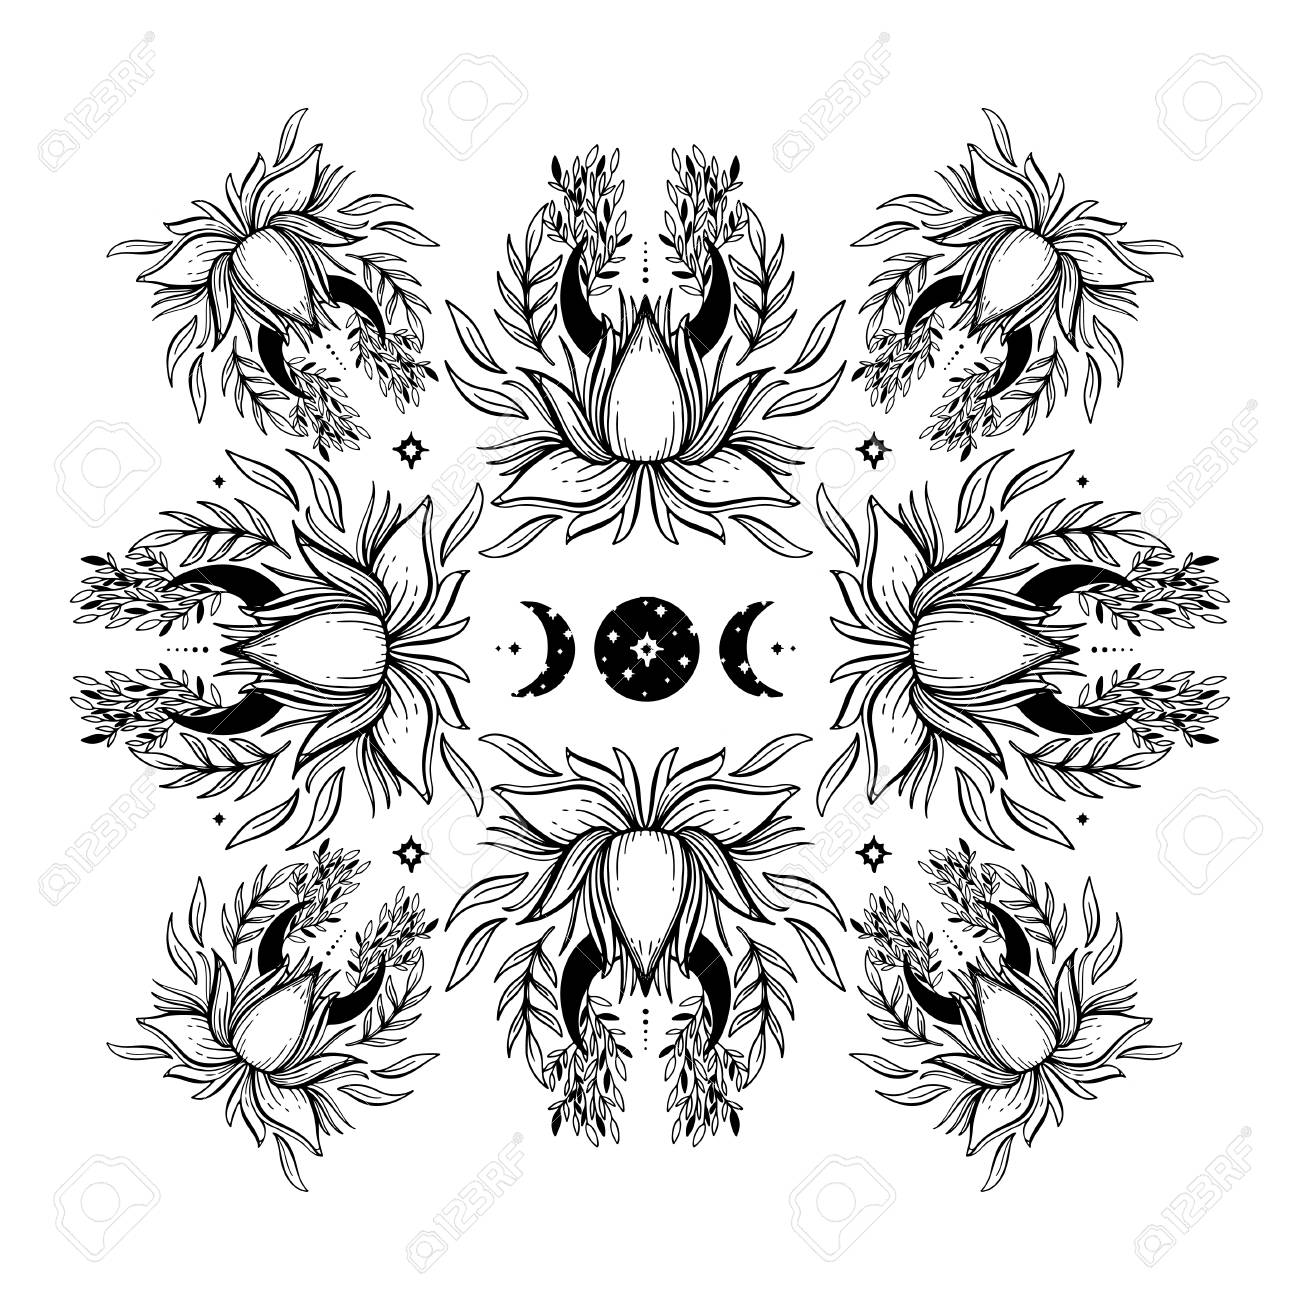 Sketch Graphic Illustration Beautiful Lotus Mandala With Buddhism Sign Spiritual Sacred And Occult Hand Drawn